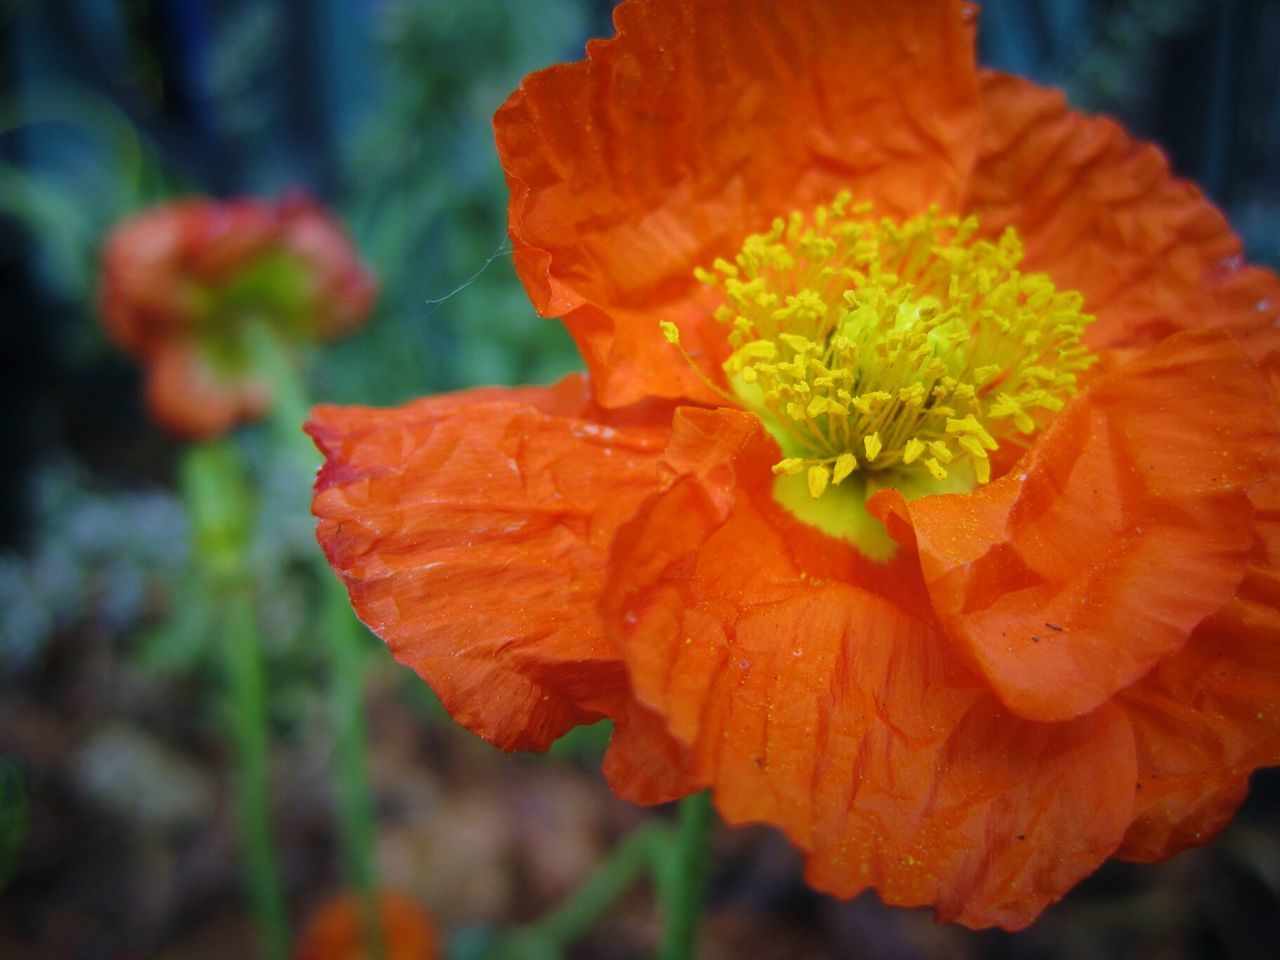 Orange poppy Flower Nature Beauty In Nature Close-up Springtime Plant Petal Flower Head Outdoors EyeEm EyeEm Best Shots - Flowers EyeEm Best Shots - Nature EyeEm Flower EyeEm Nature Lover EyeEmBestPics EyeEmNewHere Blossom Bloom Perennial EyeEm Best Shots EyeEm Gallery Pollen Blooming Orange Poppies